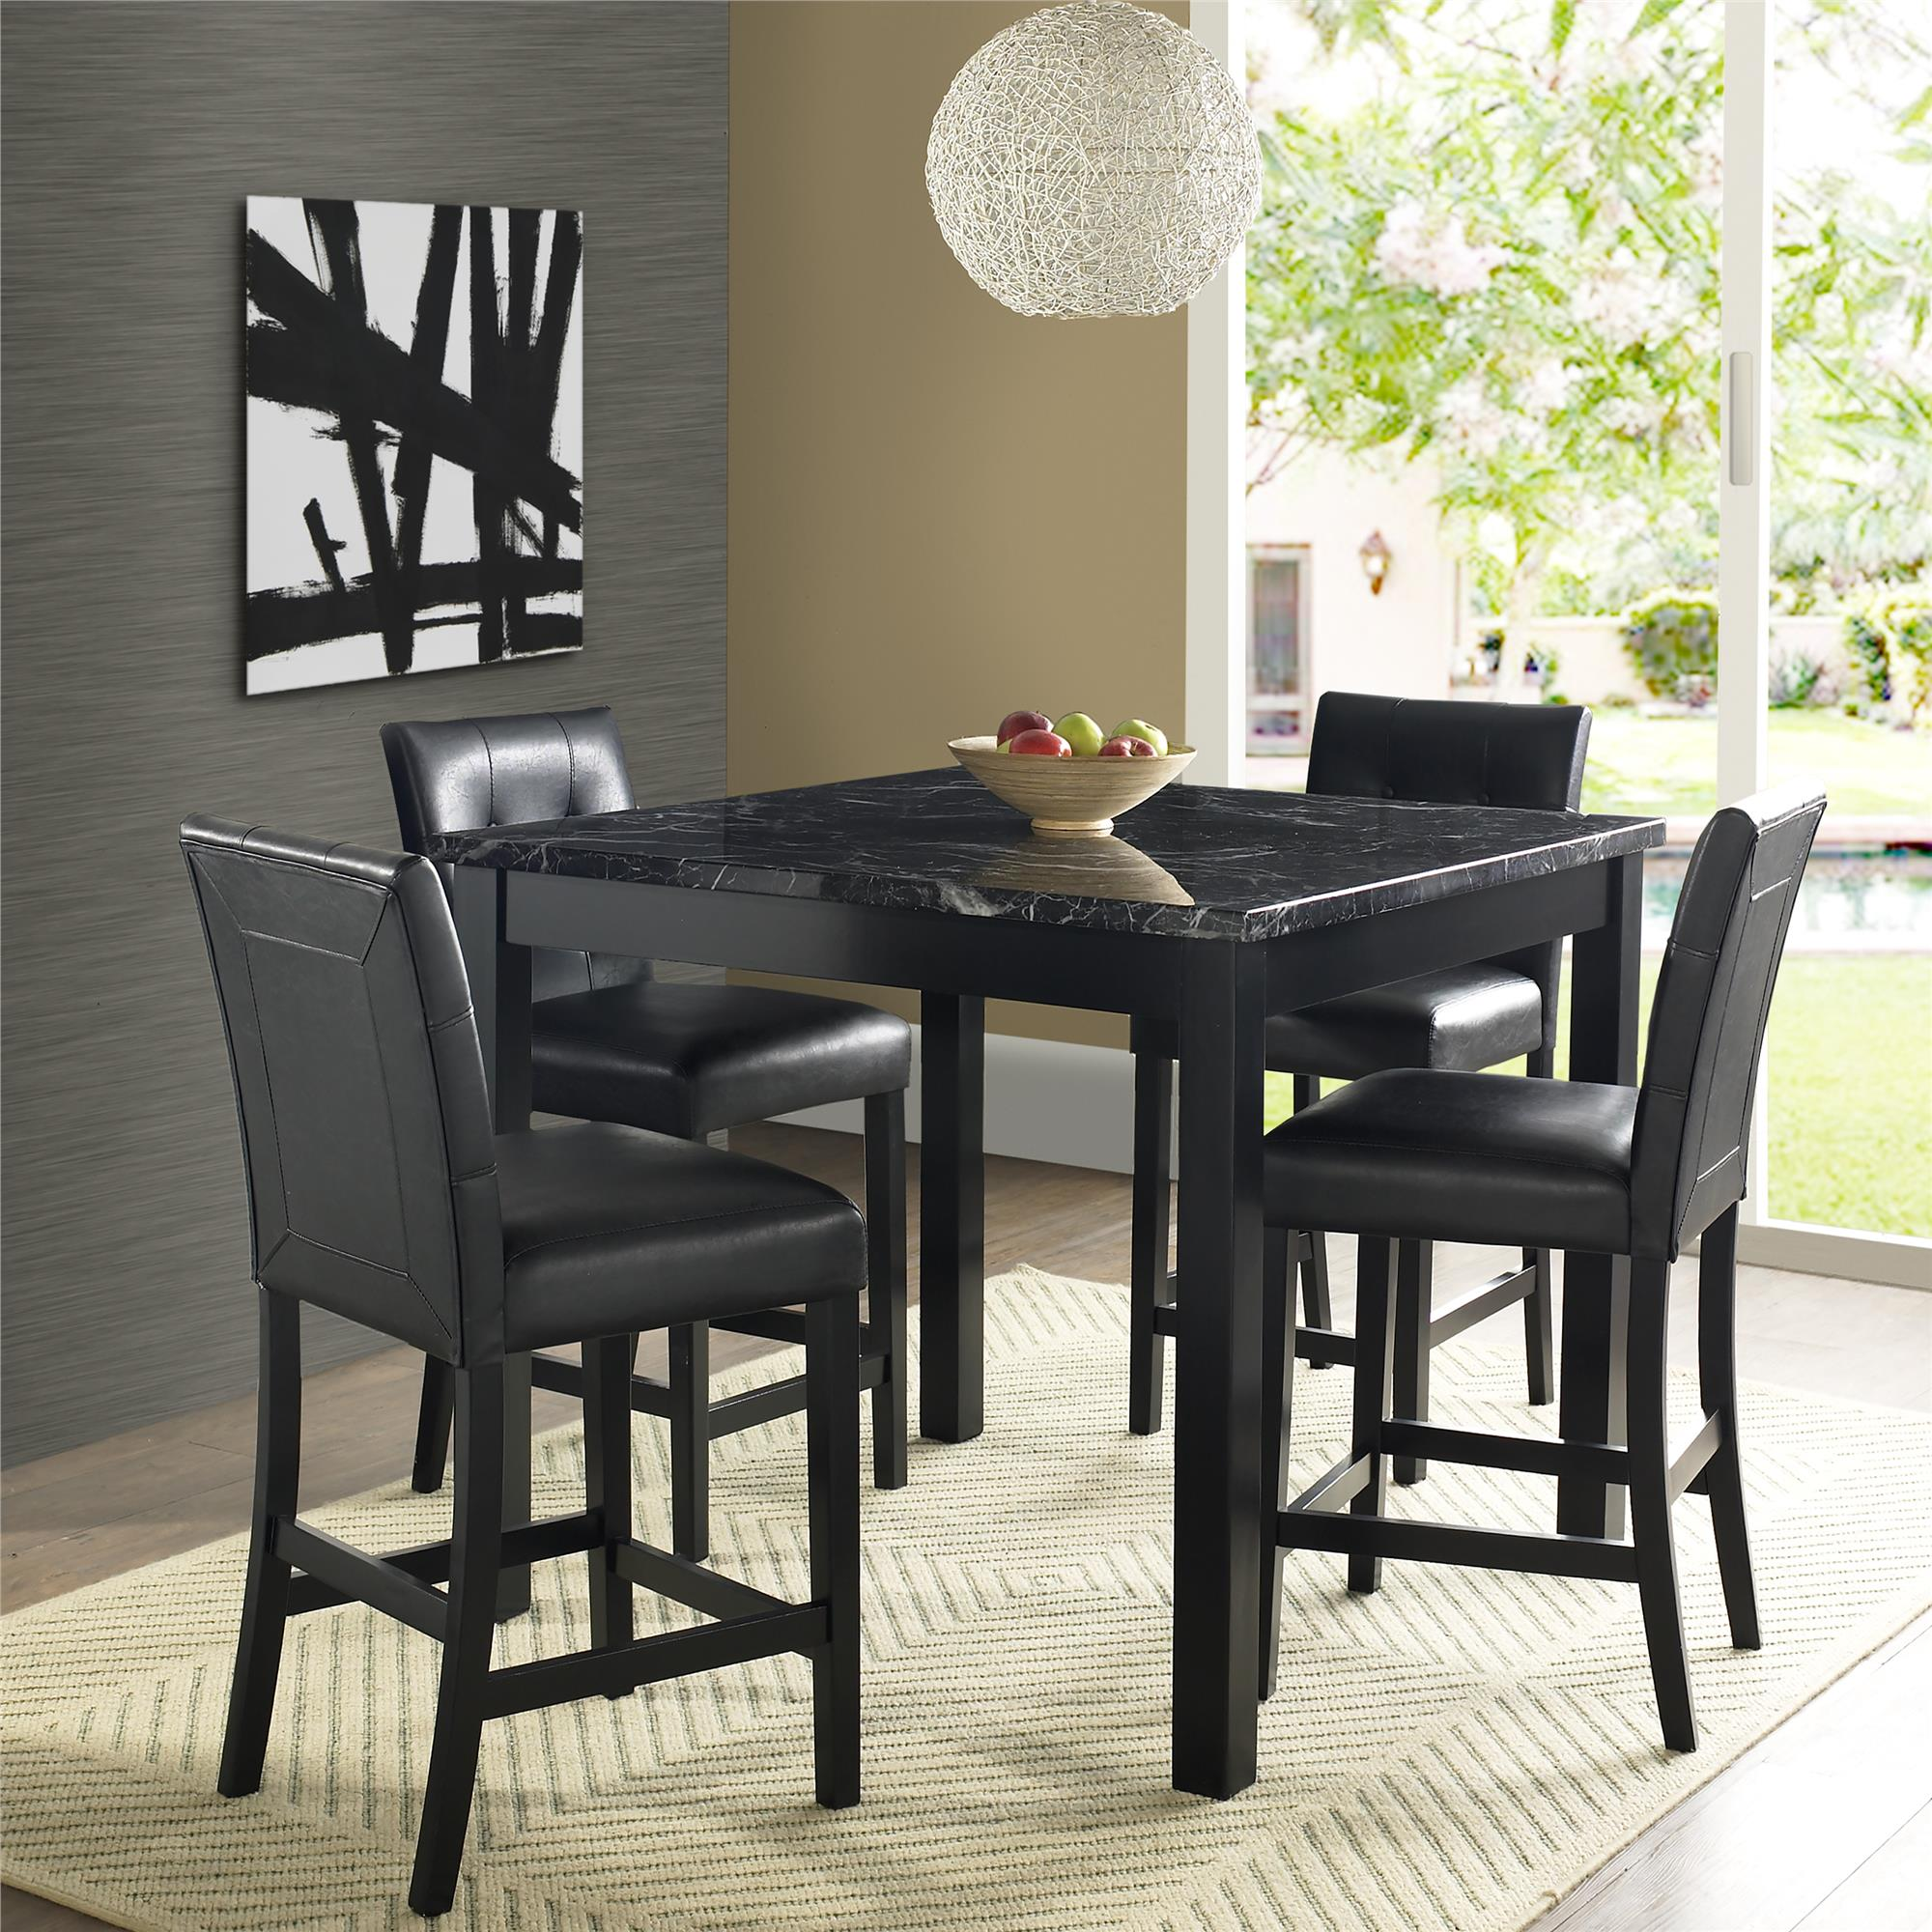 Bar Height Table And Chairs Dorel Living Andover 5 Piece Counter Height Dining Set Multiple Colors